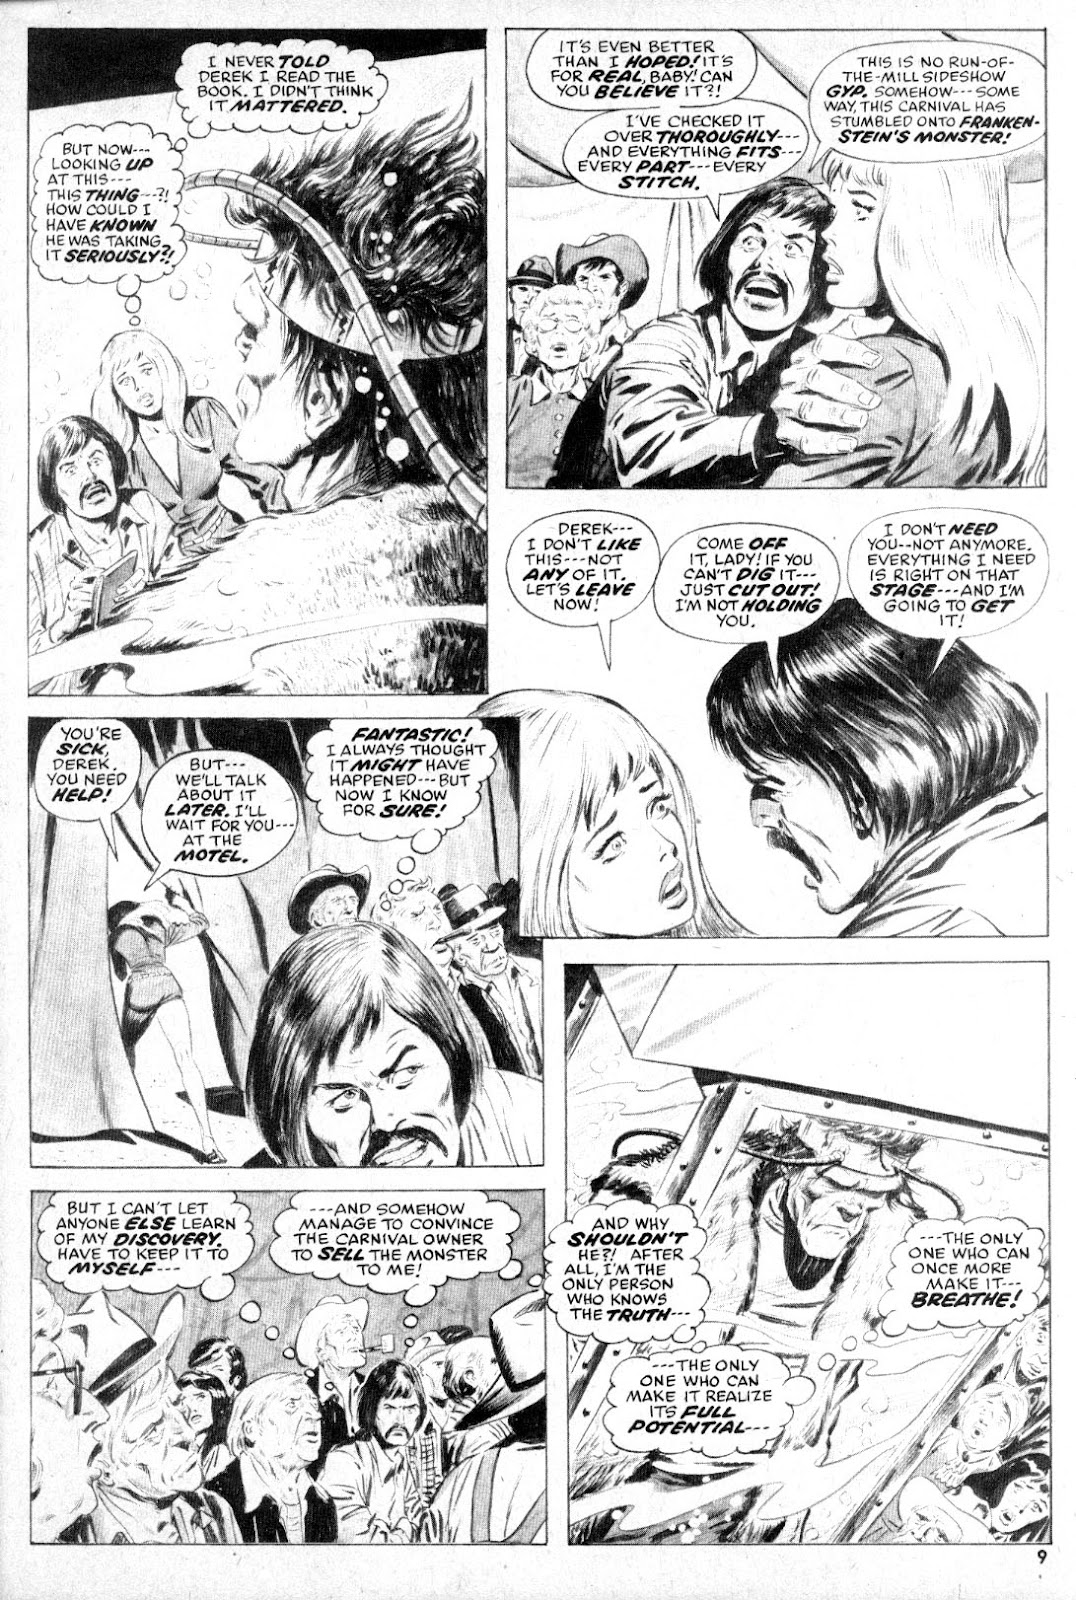 Monsters Unleashed (1973) issue 2 - Page 10